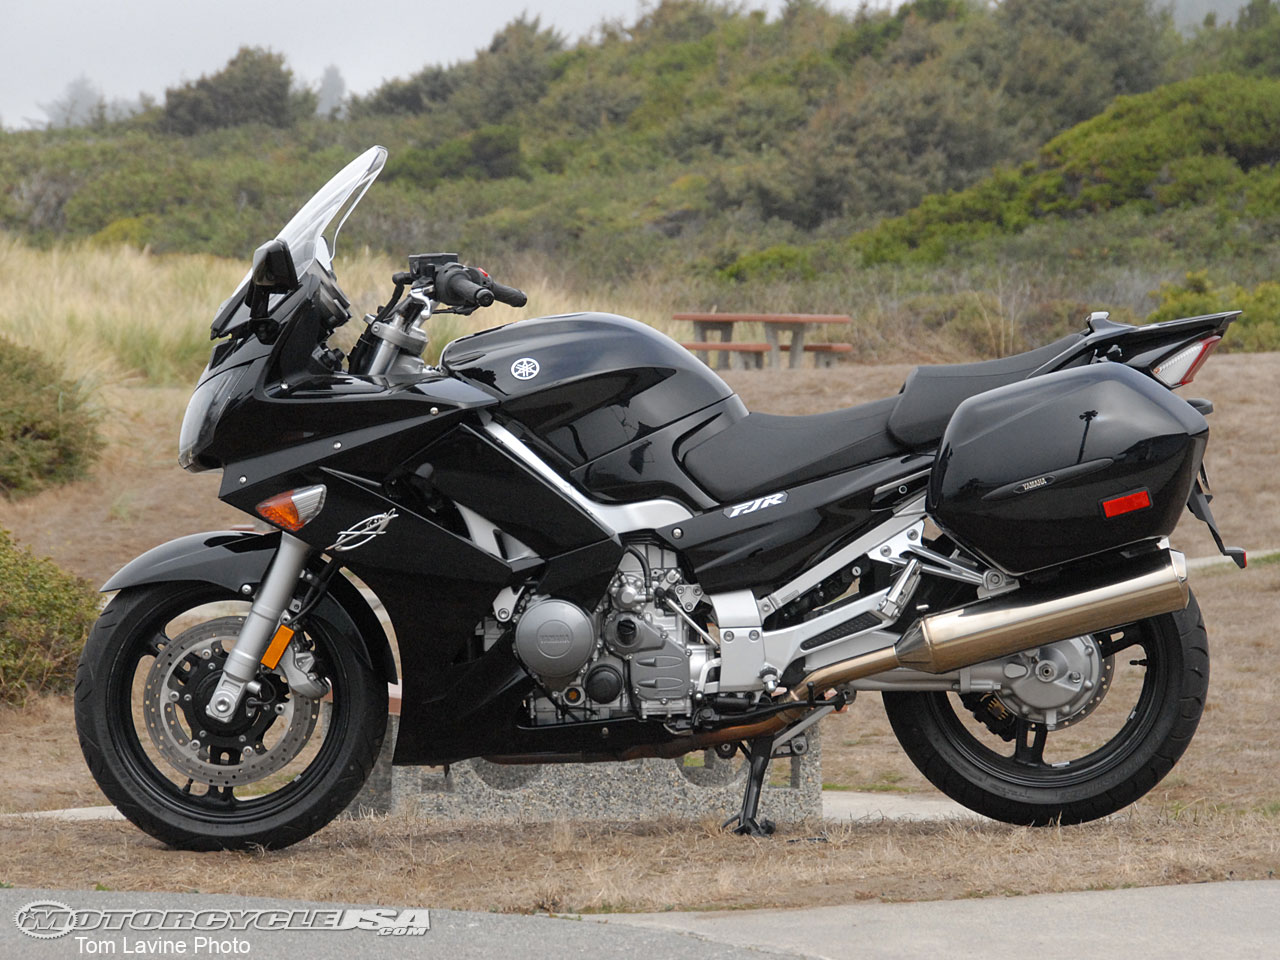 Yamaha FJR 1300 AS 2009 #2